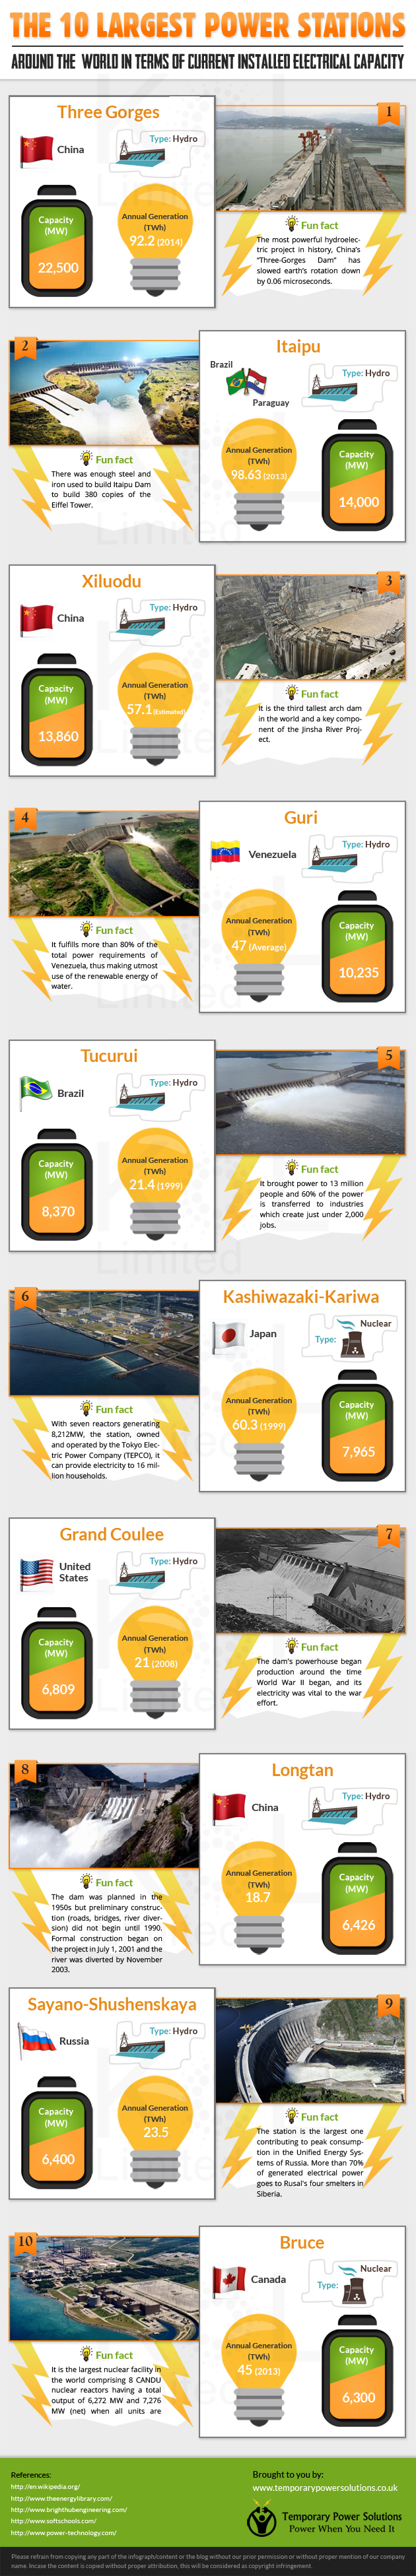 The 10 largest power stations of the world